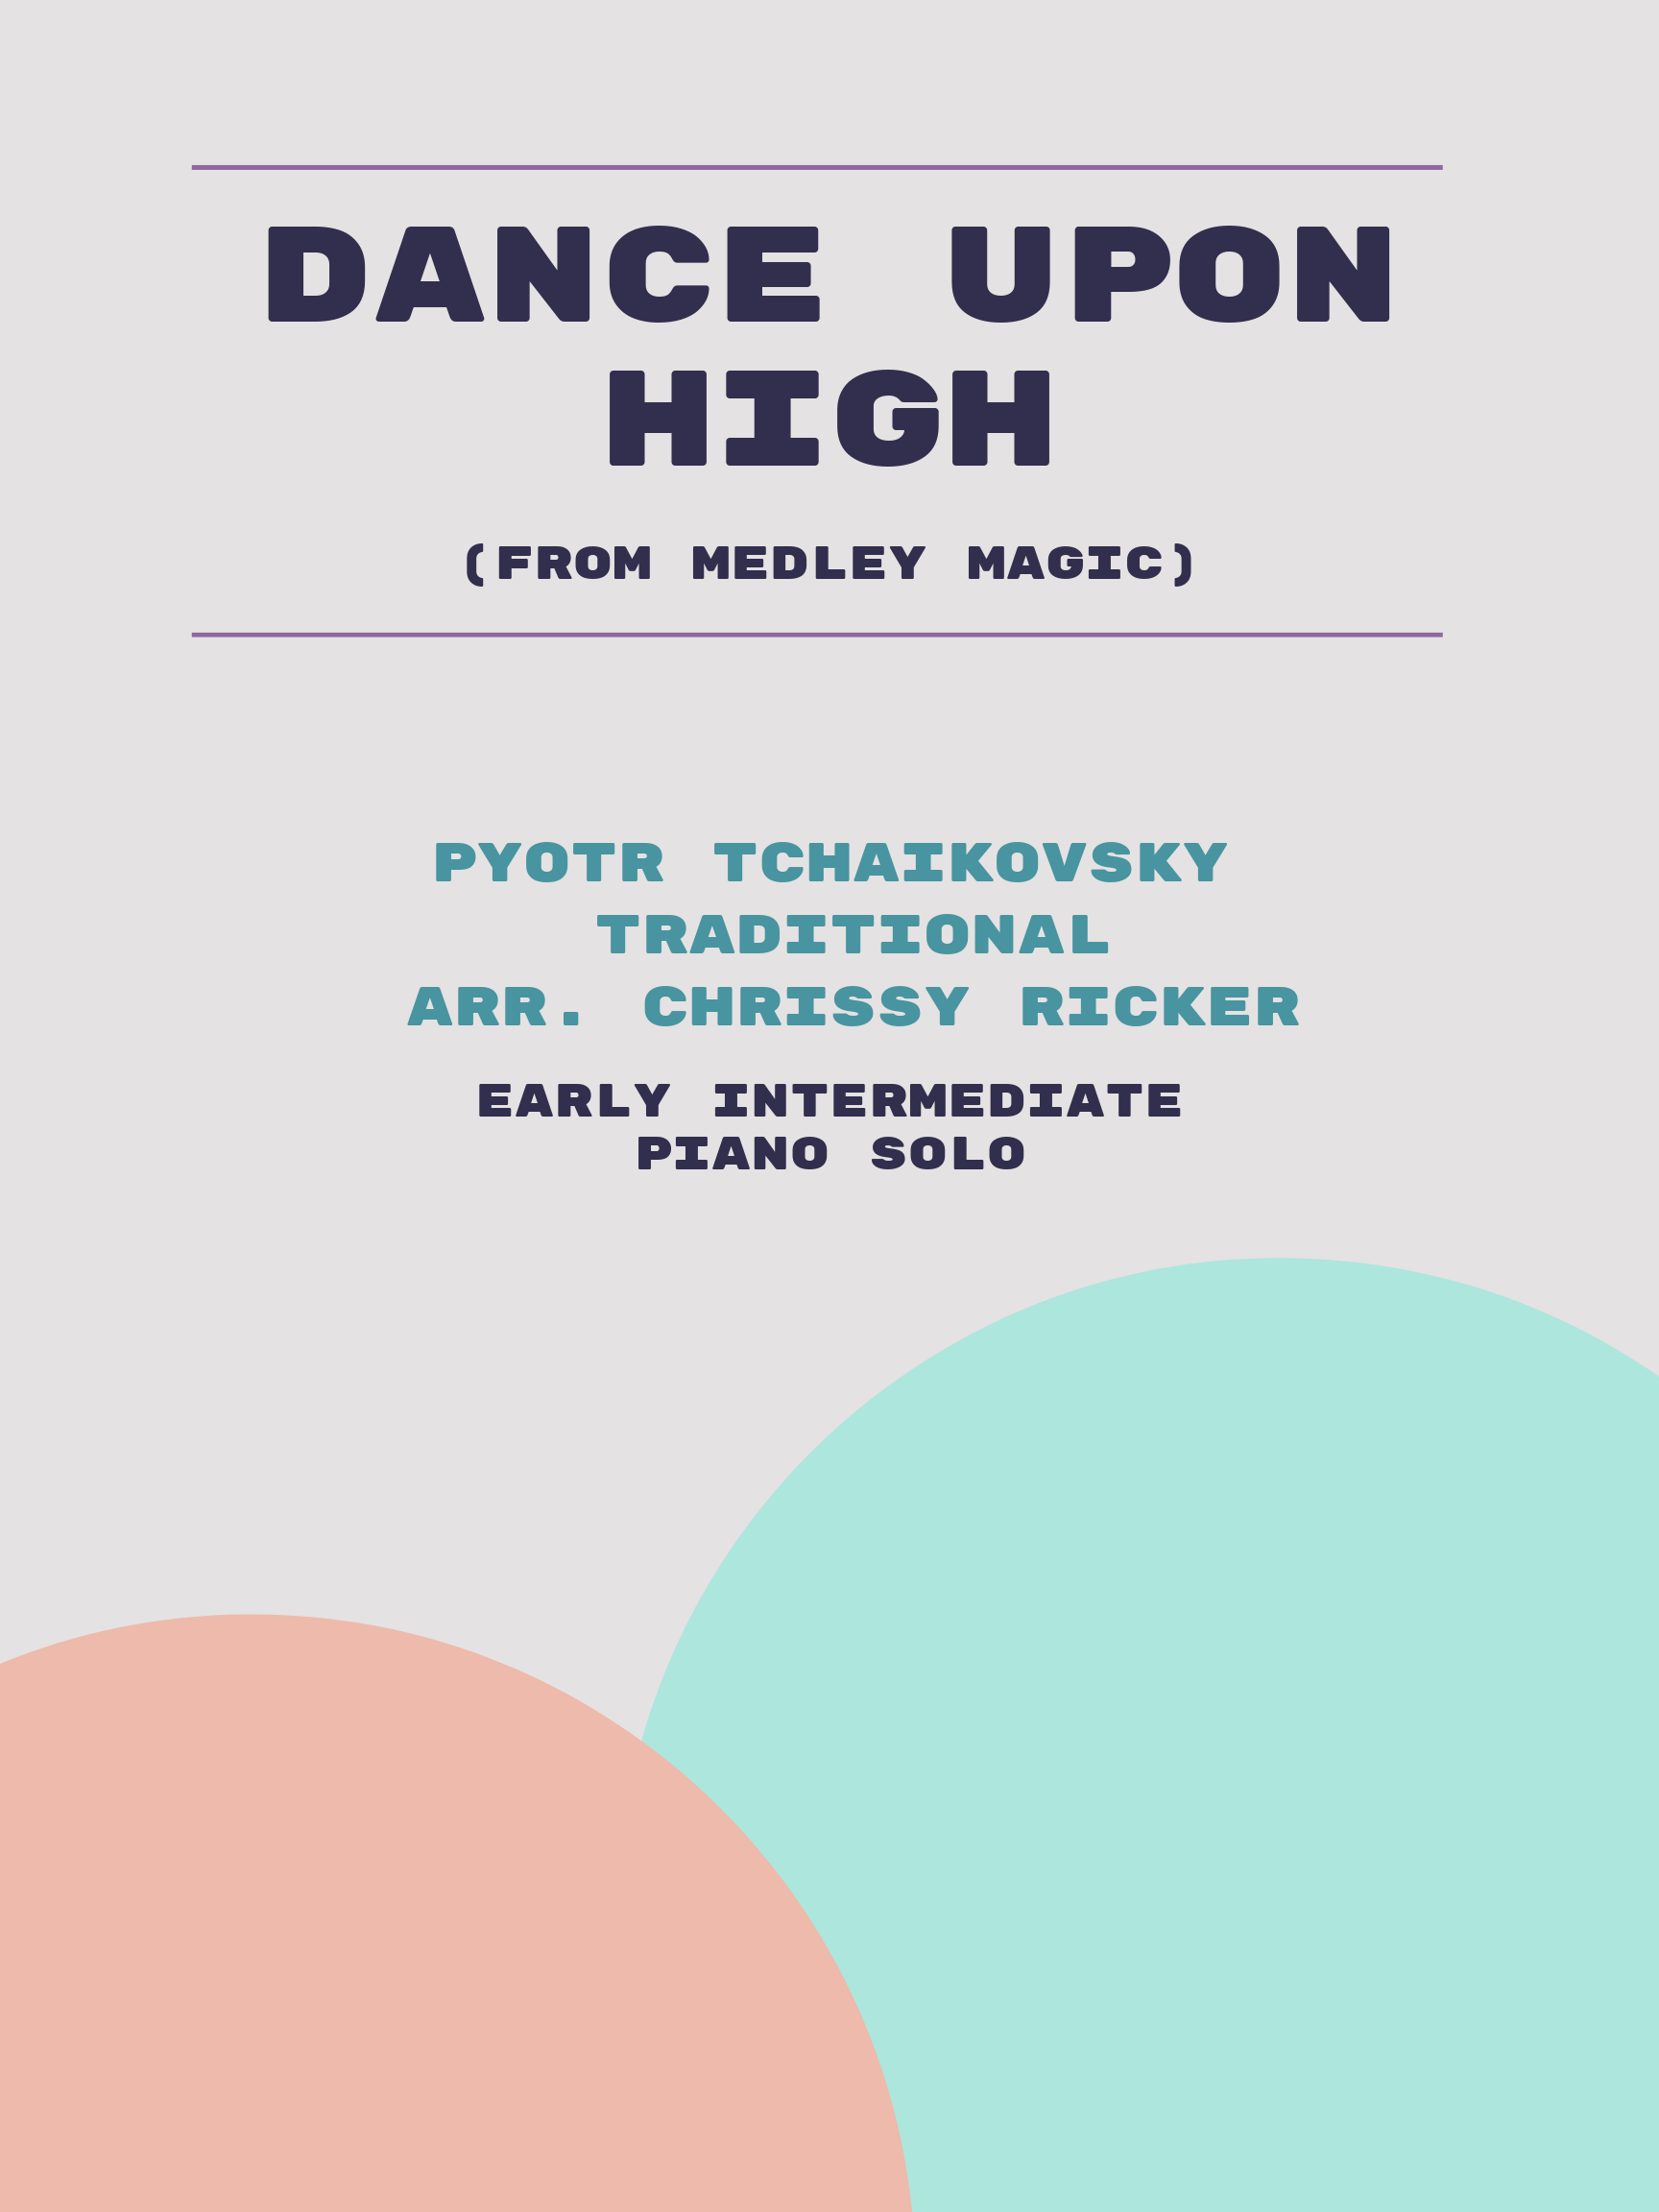 Dance Upon High by Pyotr Tchaikovsky, Traditional